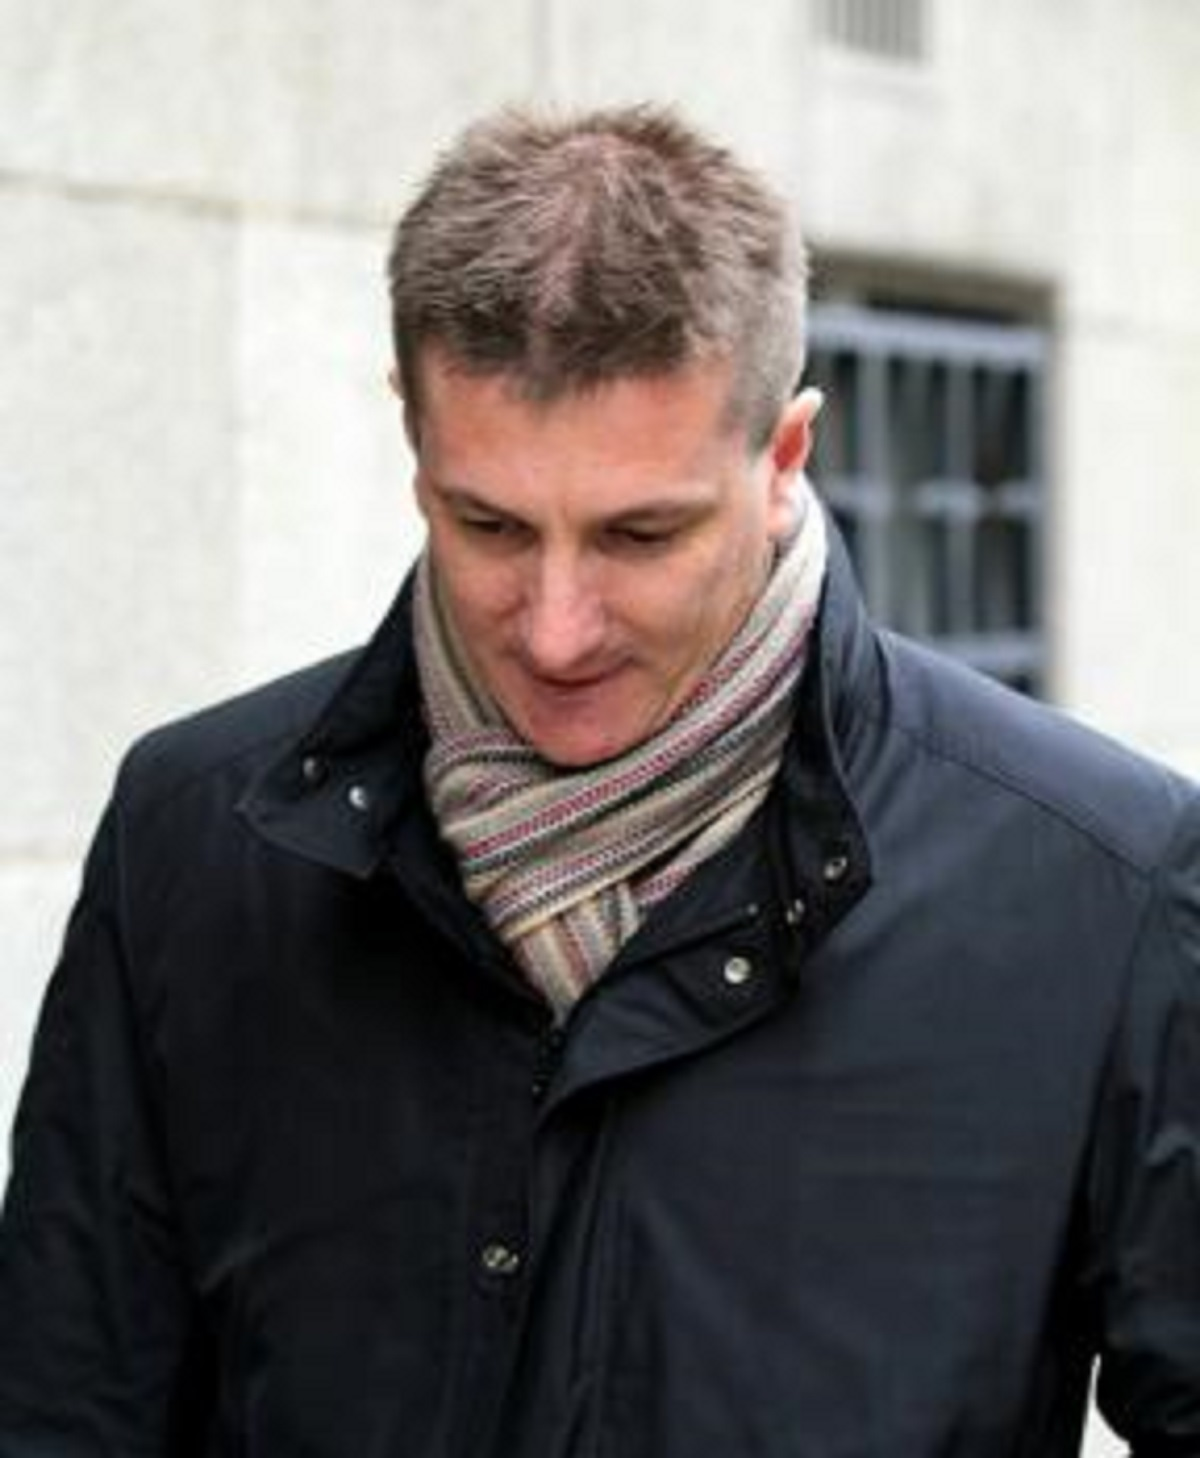 Fraudster Matthew Ames sentenced to three years